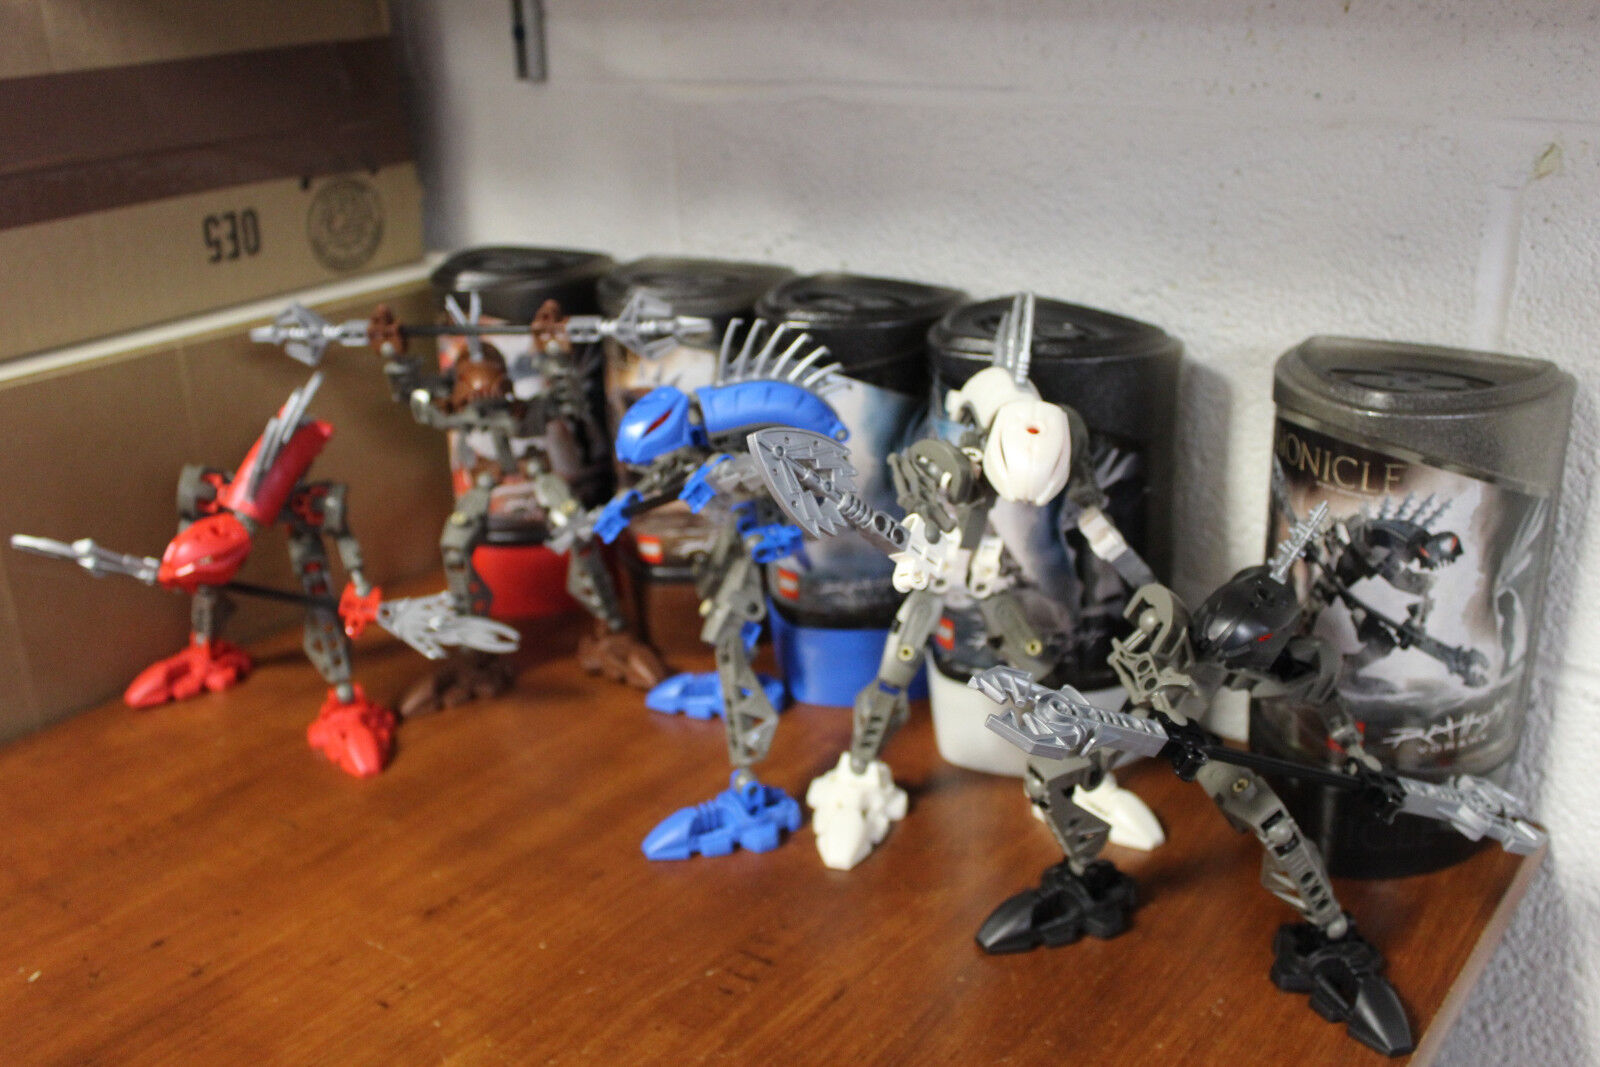 Lego Bionicle Rahkshi Collection of 5 - Ages 7+   8592, 8587, 8590, 8588, 8591